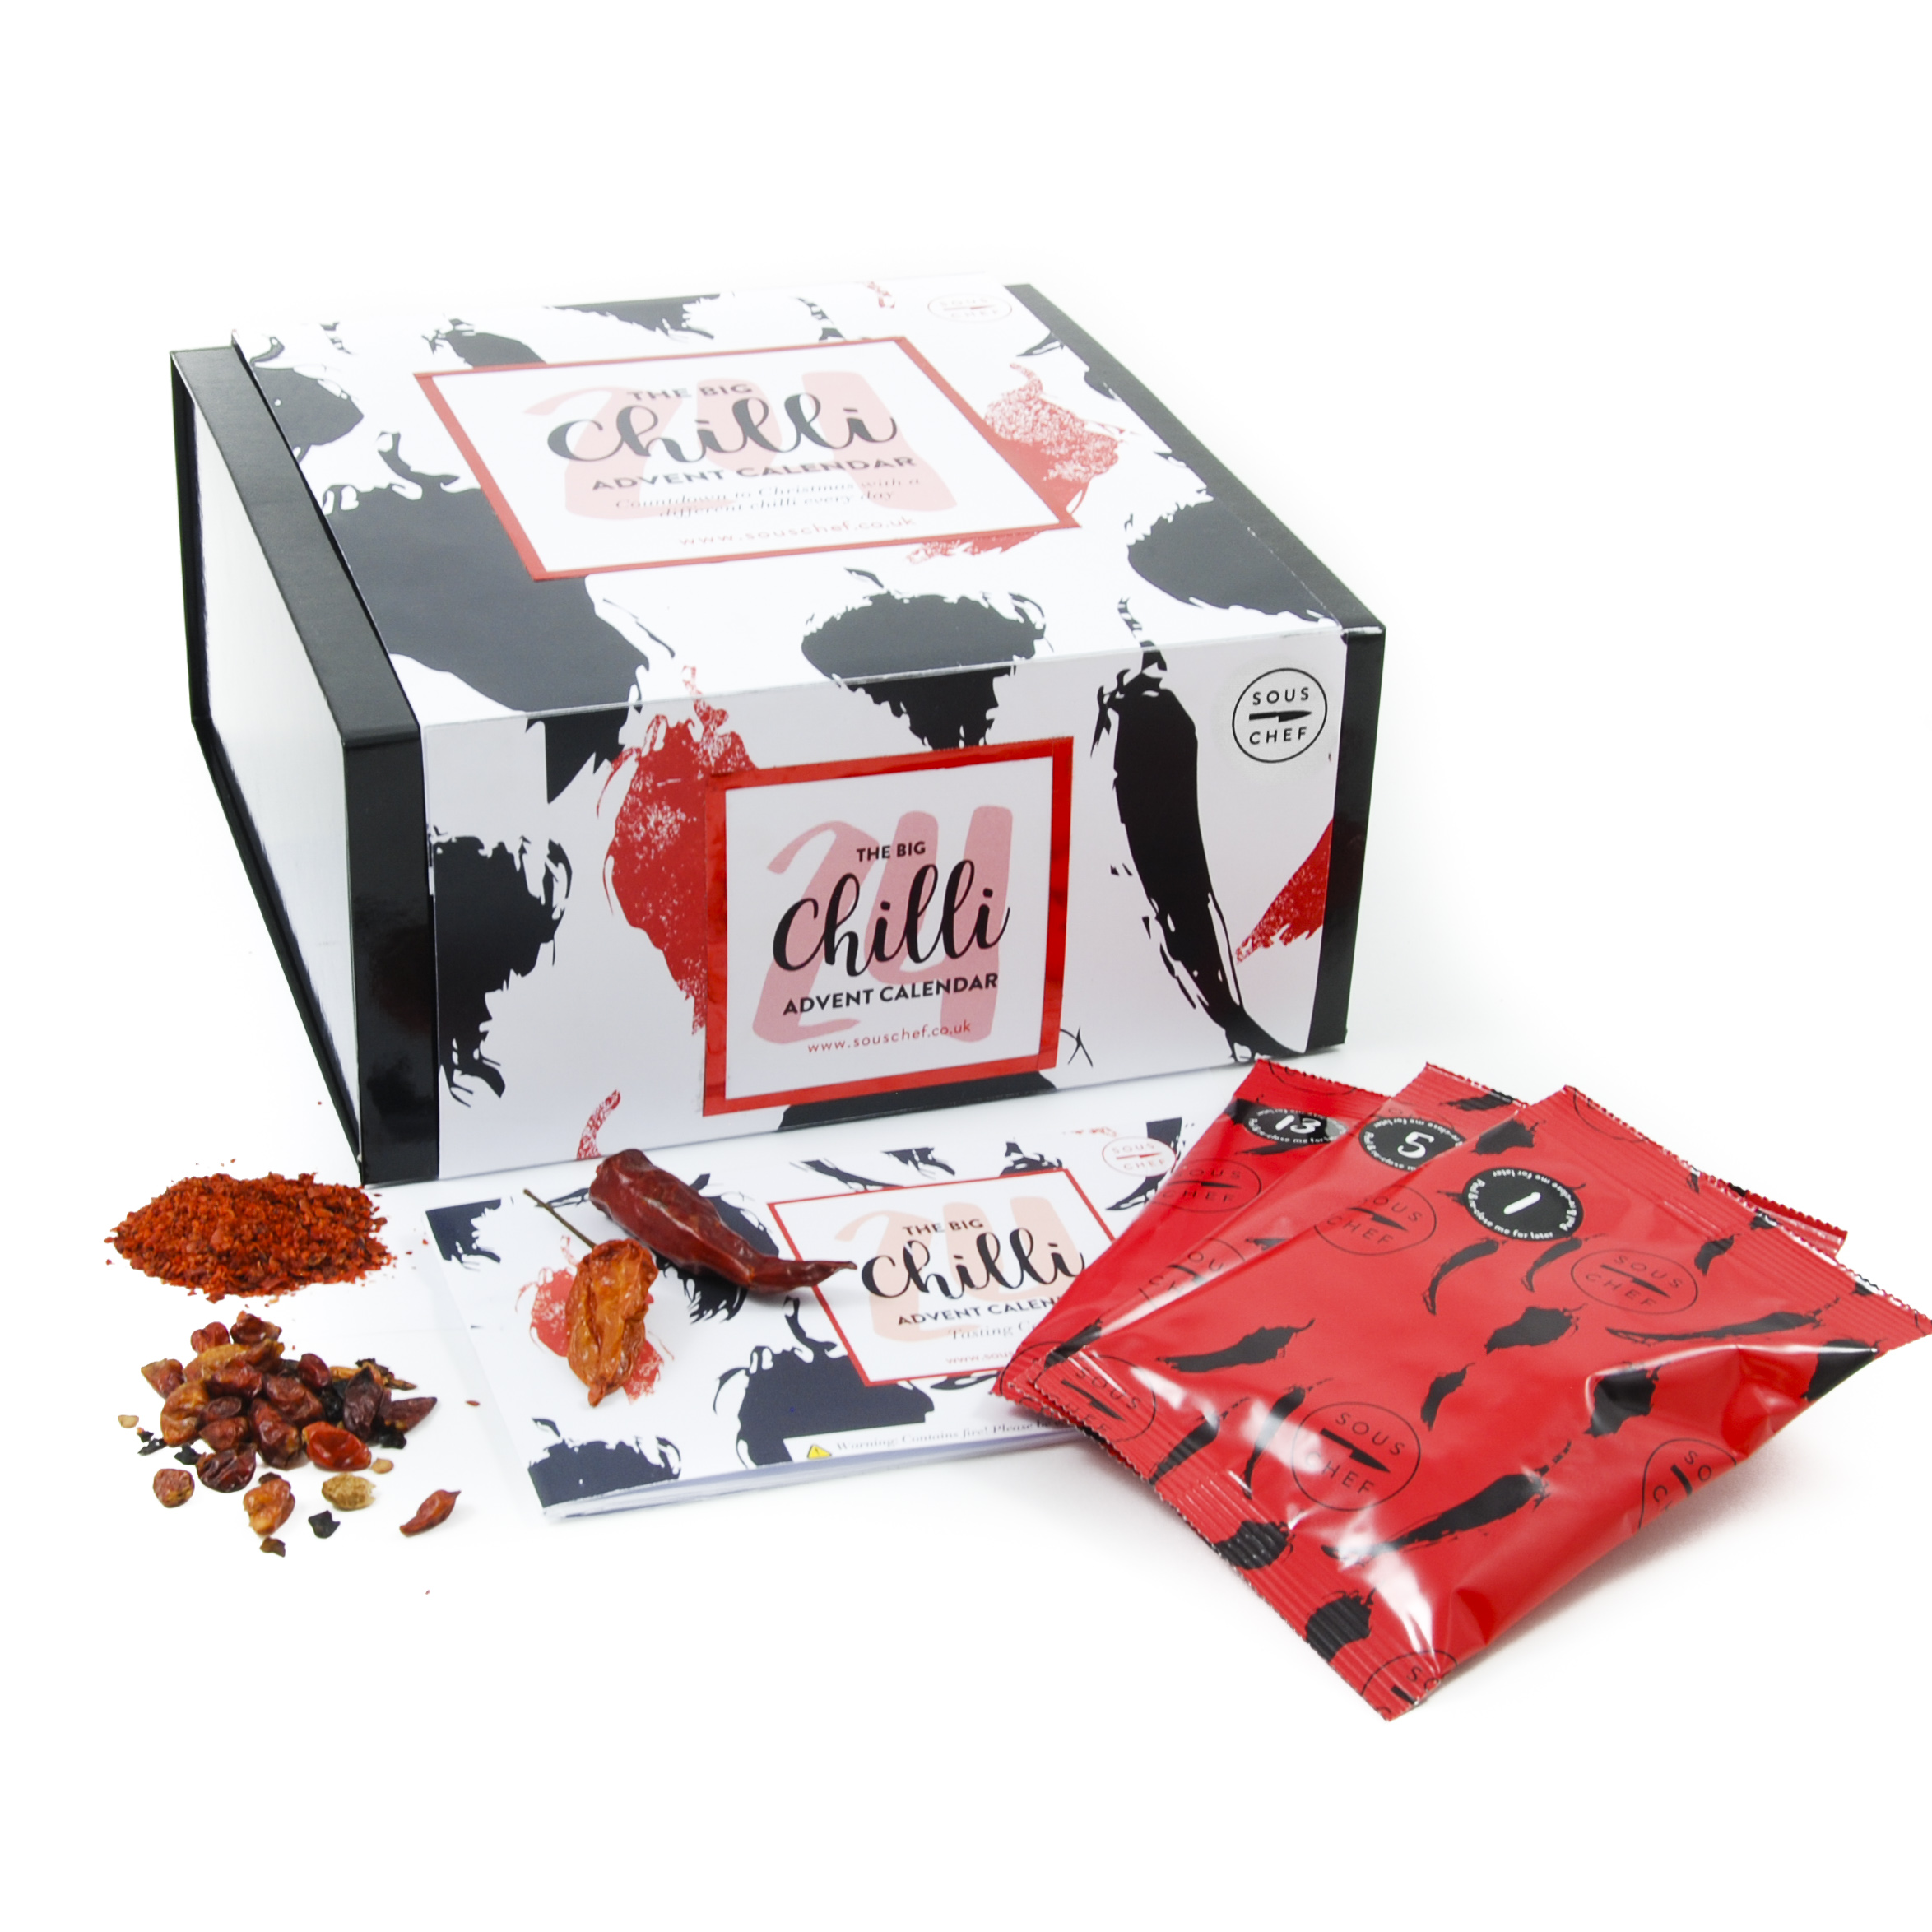 Chilli advent calendar sous chef. The box is black with a white sleeve which has images of chillis drawn in black and red. Outside of the box there are a few chillis outside the box and sachets of chilli too